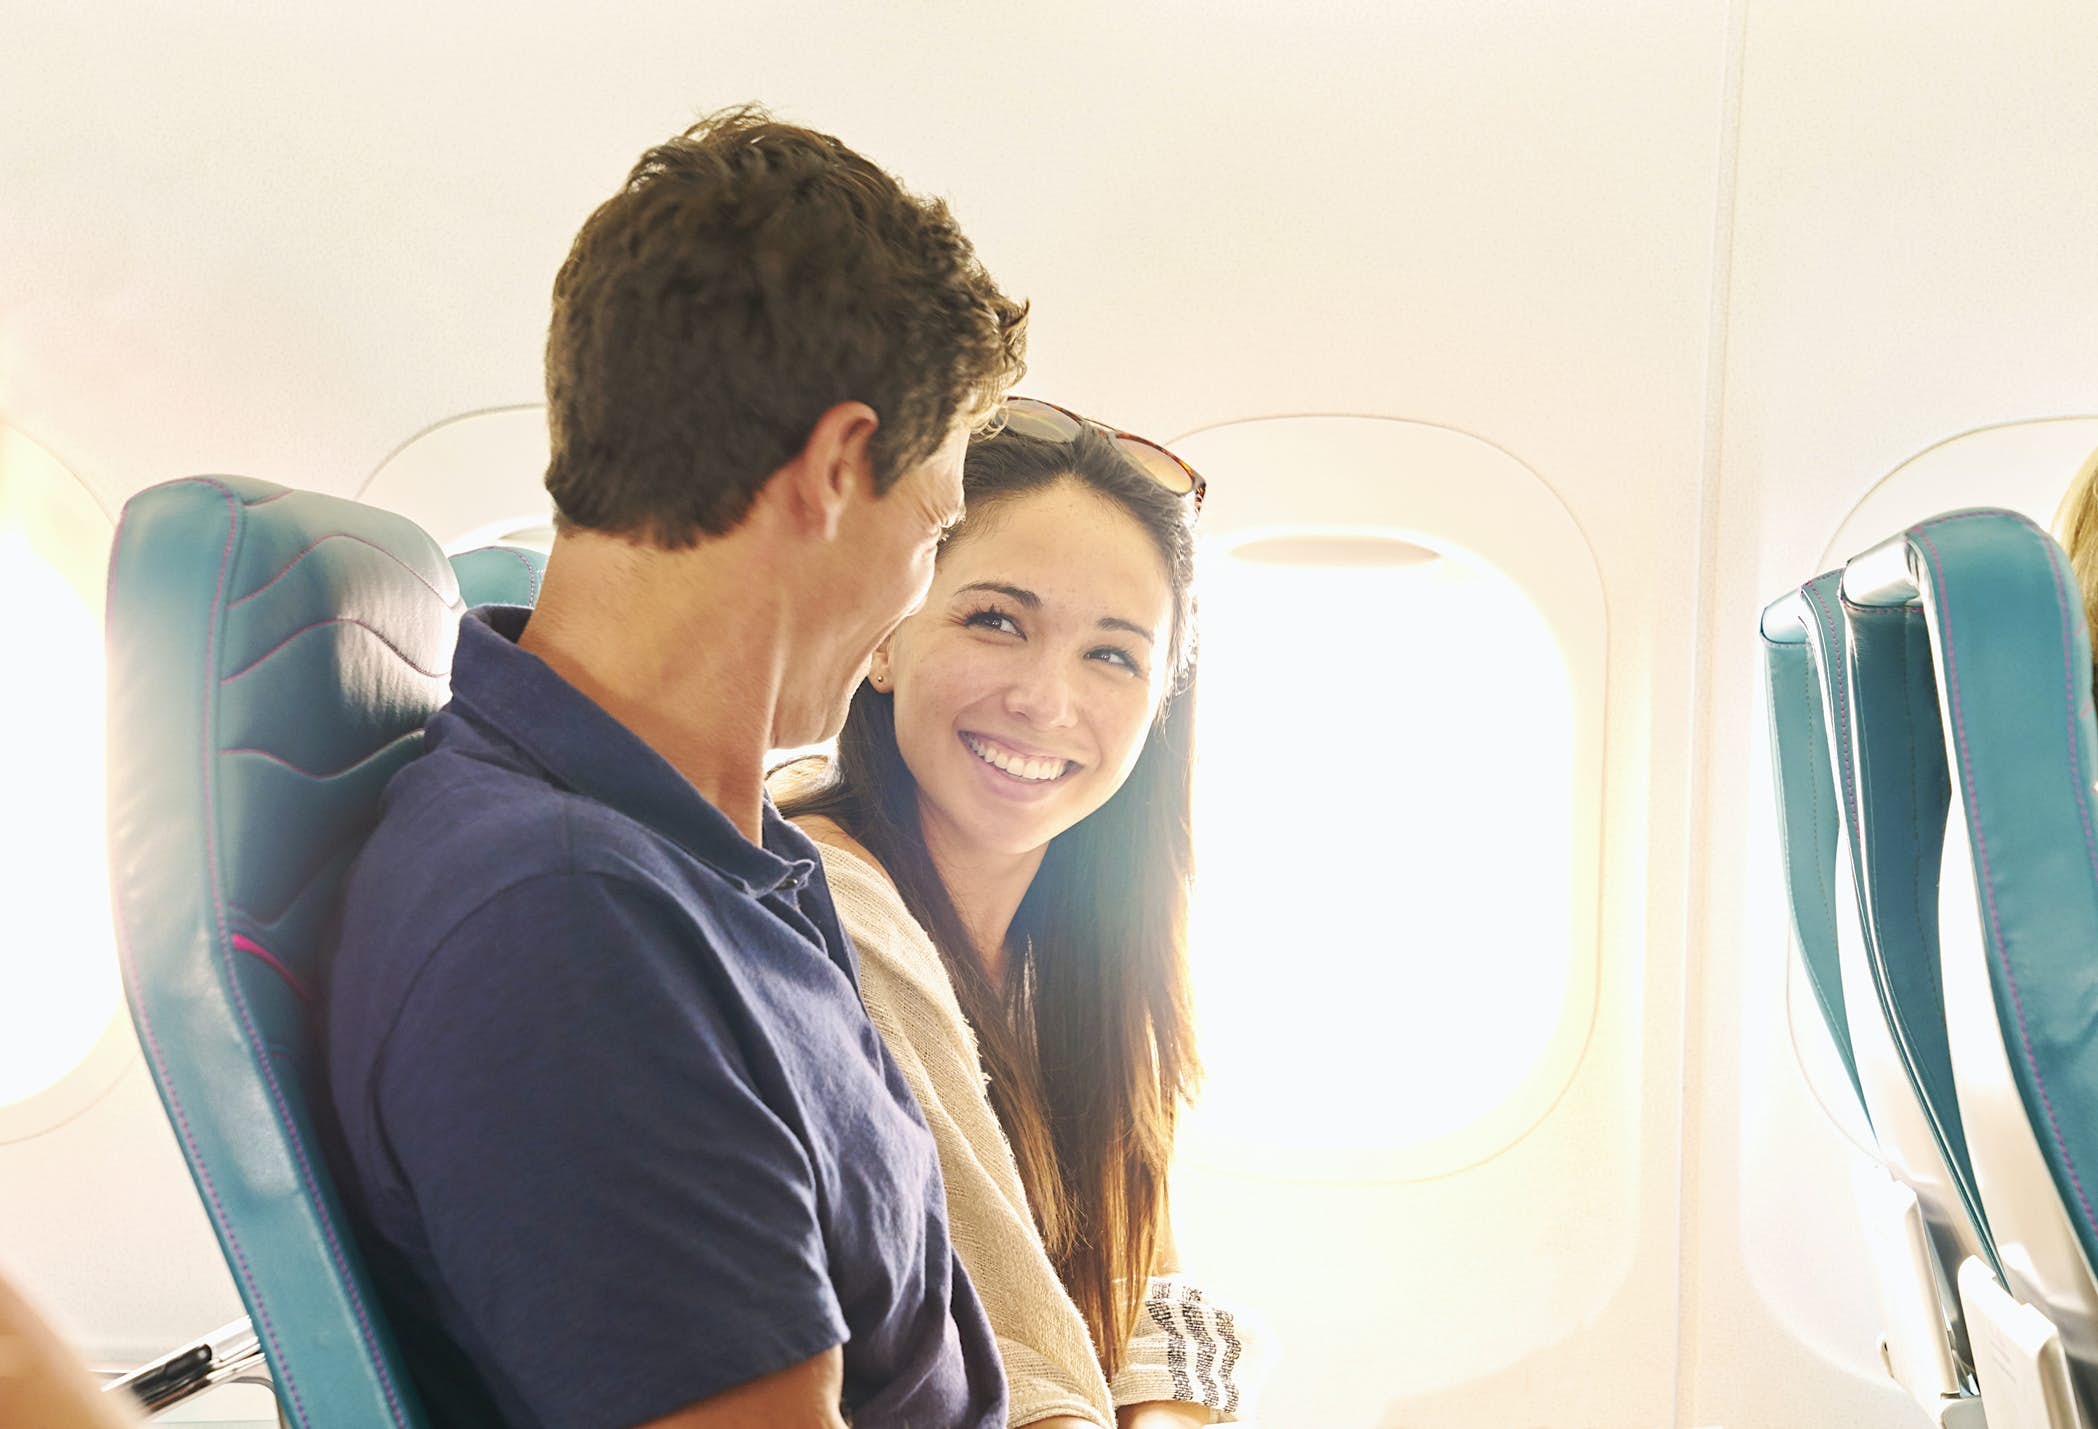 Smiling couple on plane